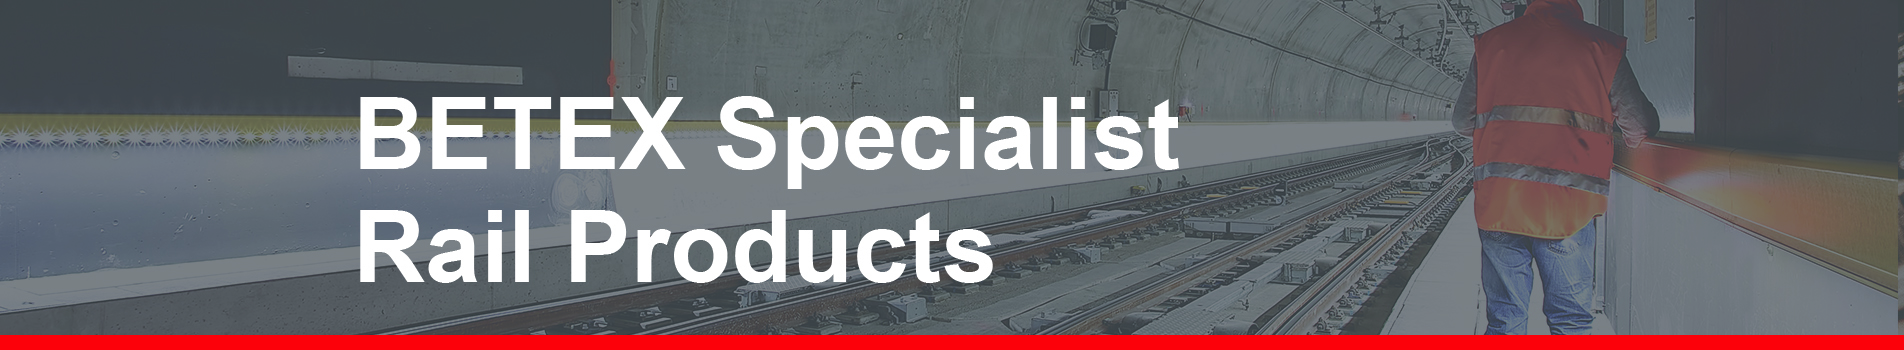 BETEX Specialist Rail Products